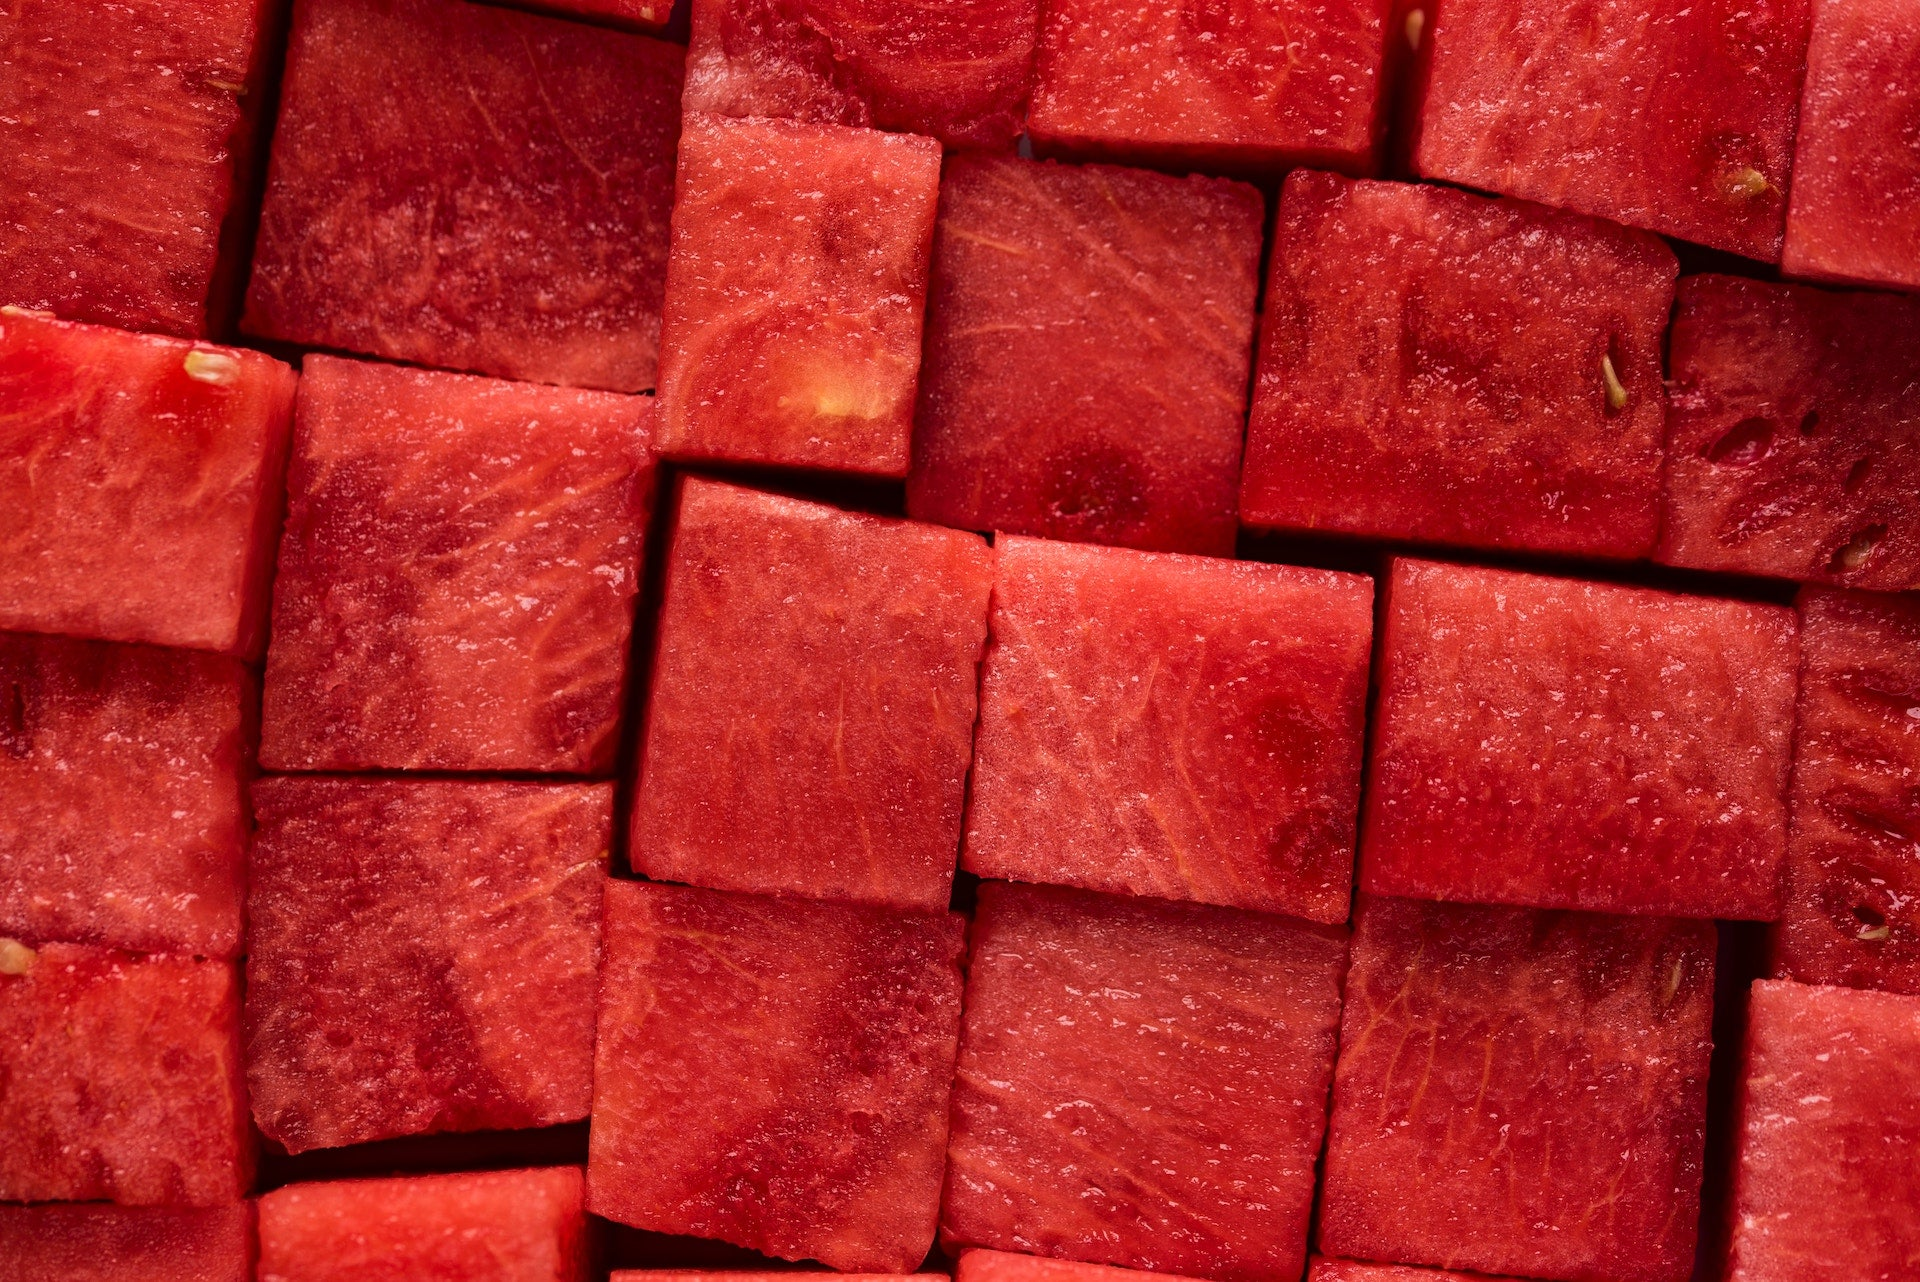 Water melon pieces